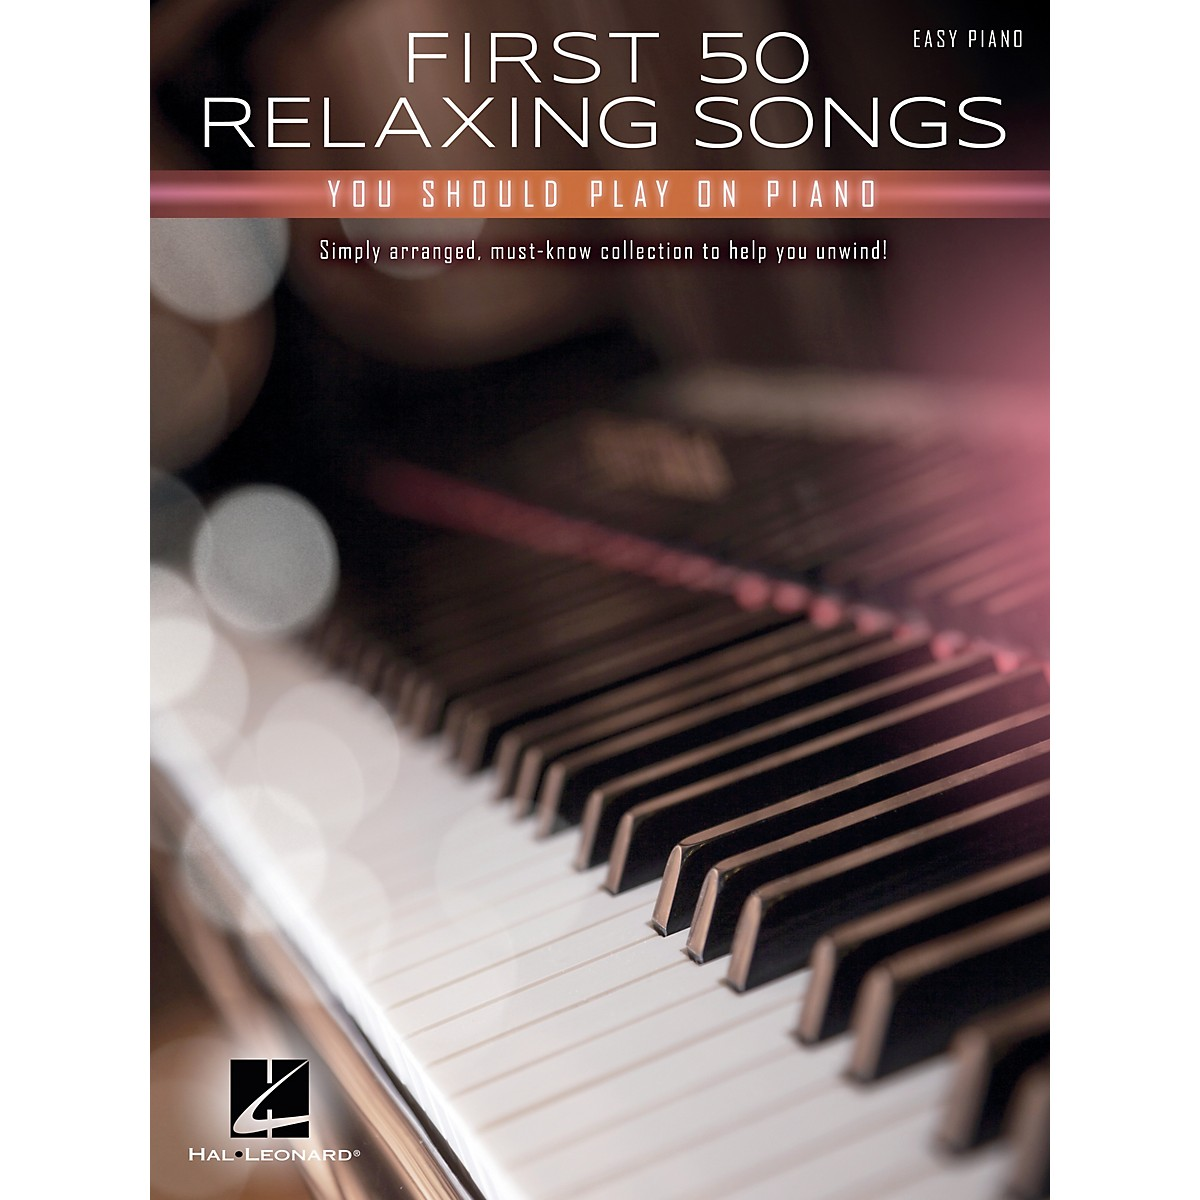 Hal Leonard First 50 Relaxing Songs You Should Play on Piano - Easy Piano Songbook